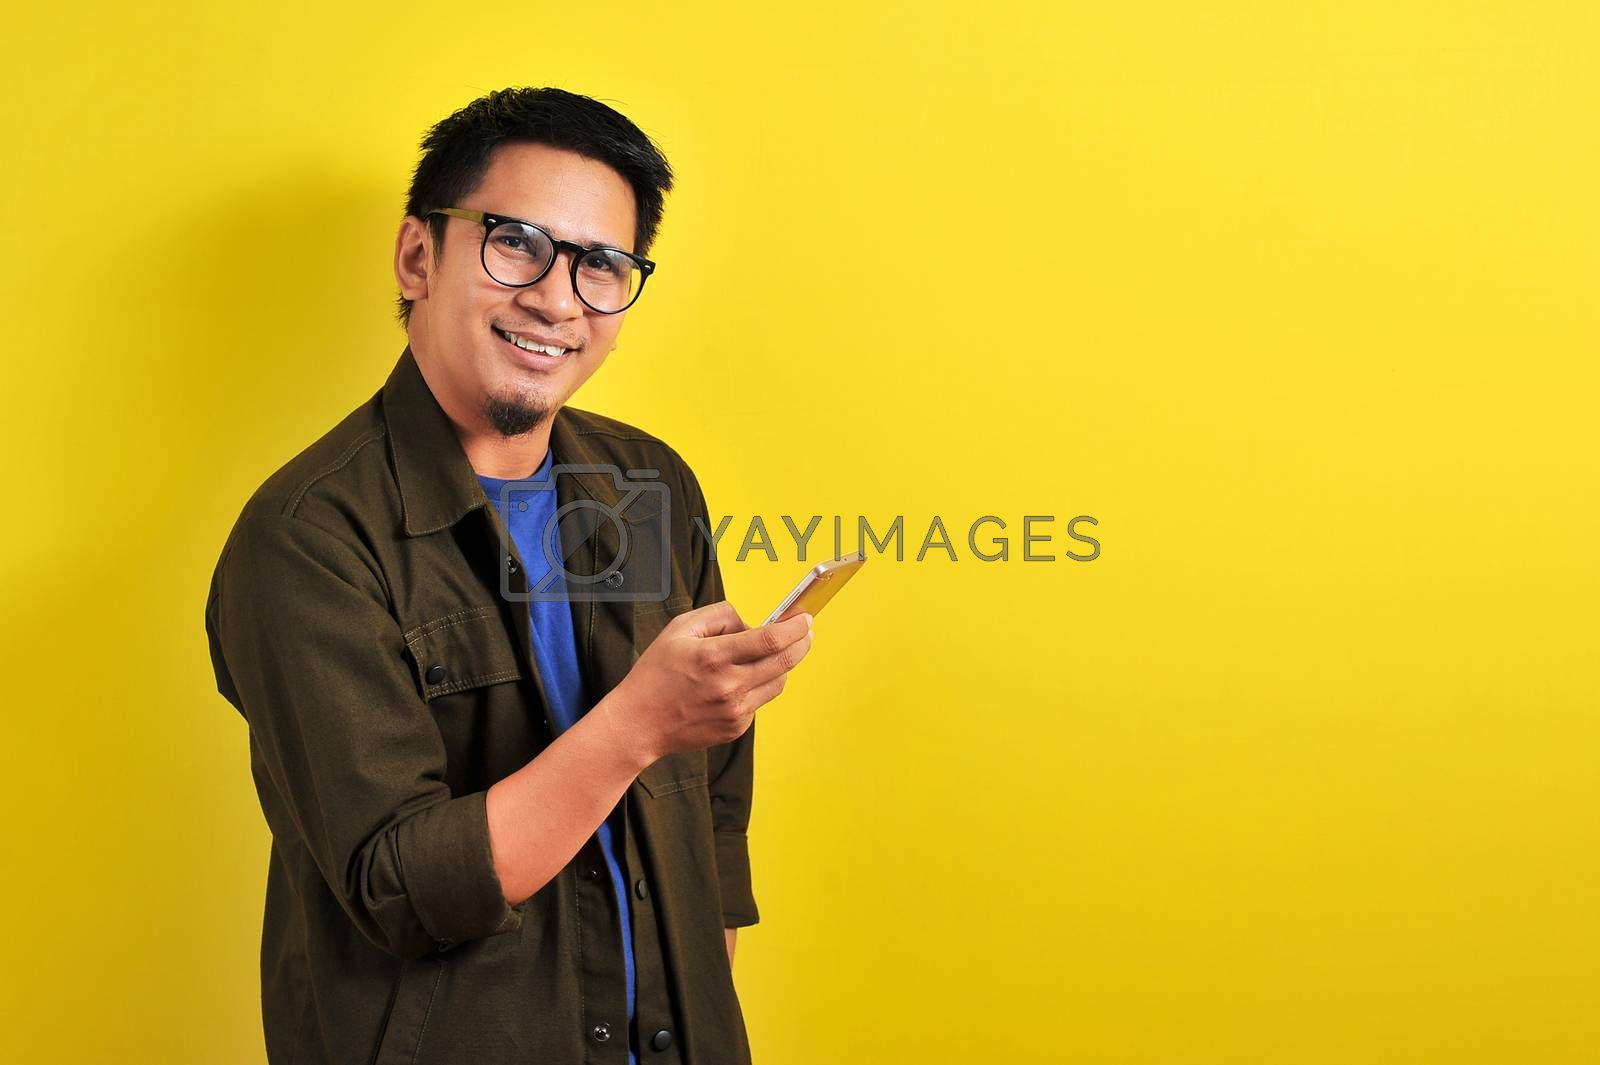 Portrait of happy smiling Asian man using smartphone wearing cas by heruan1507